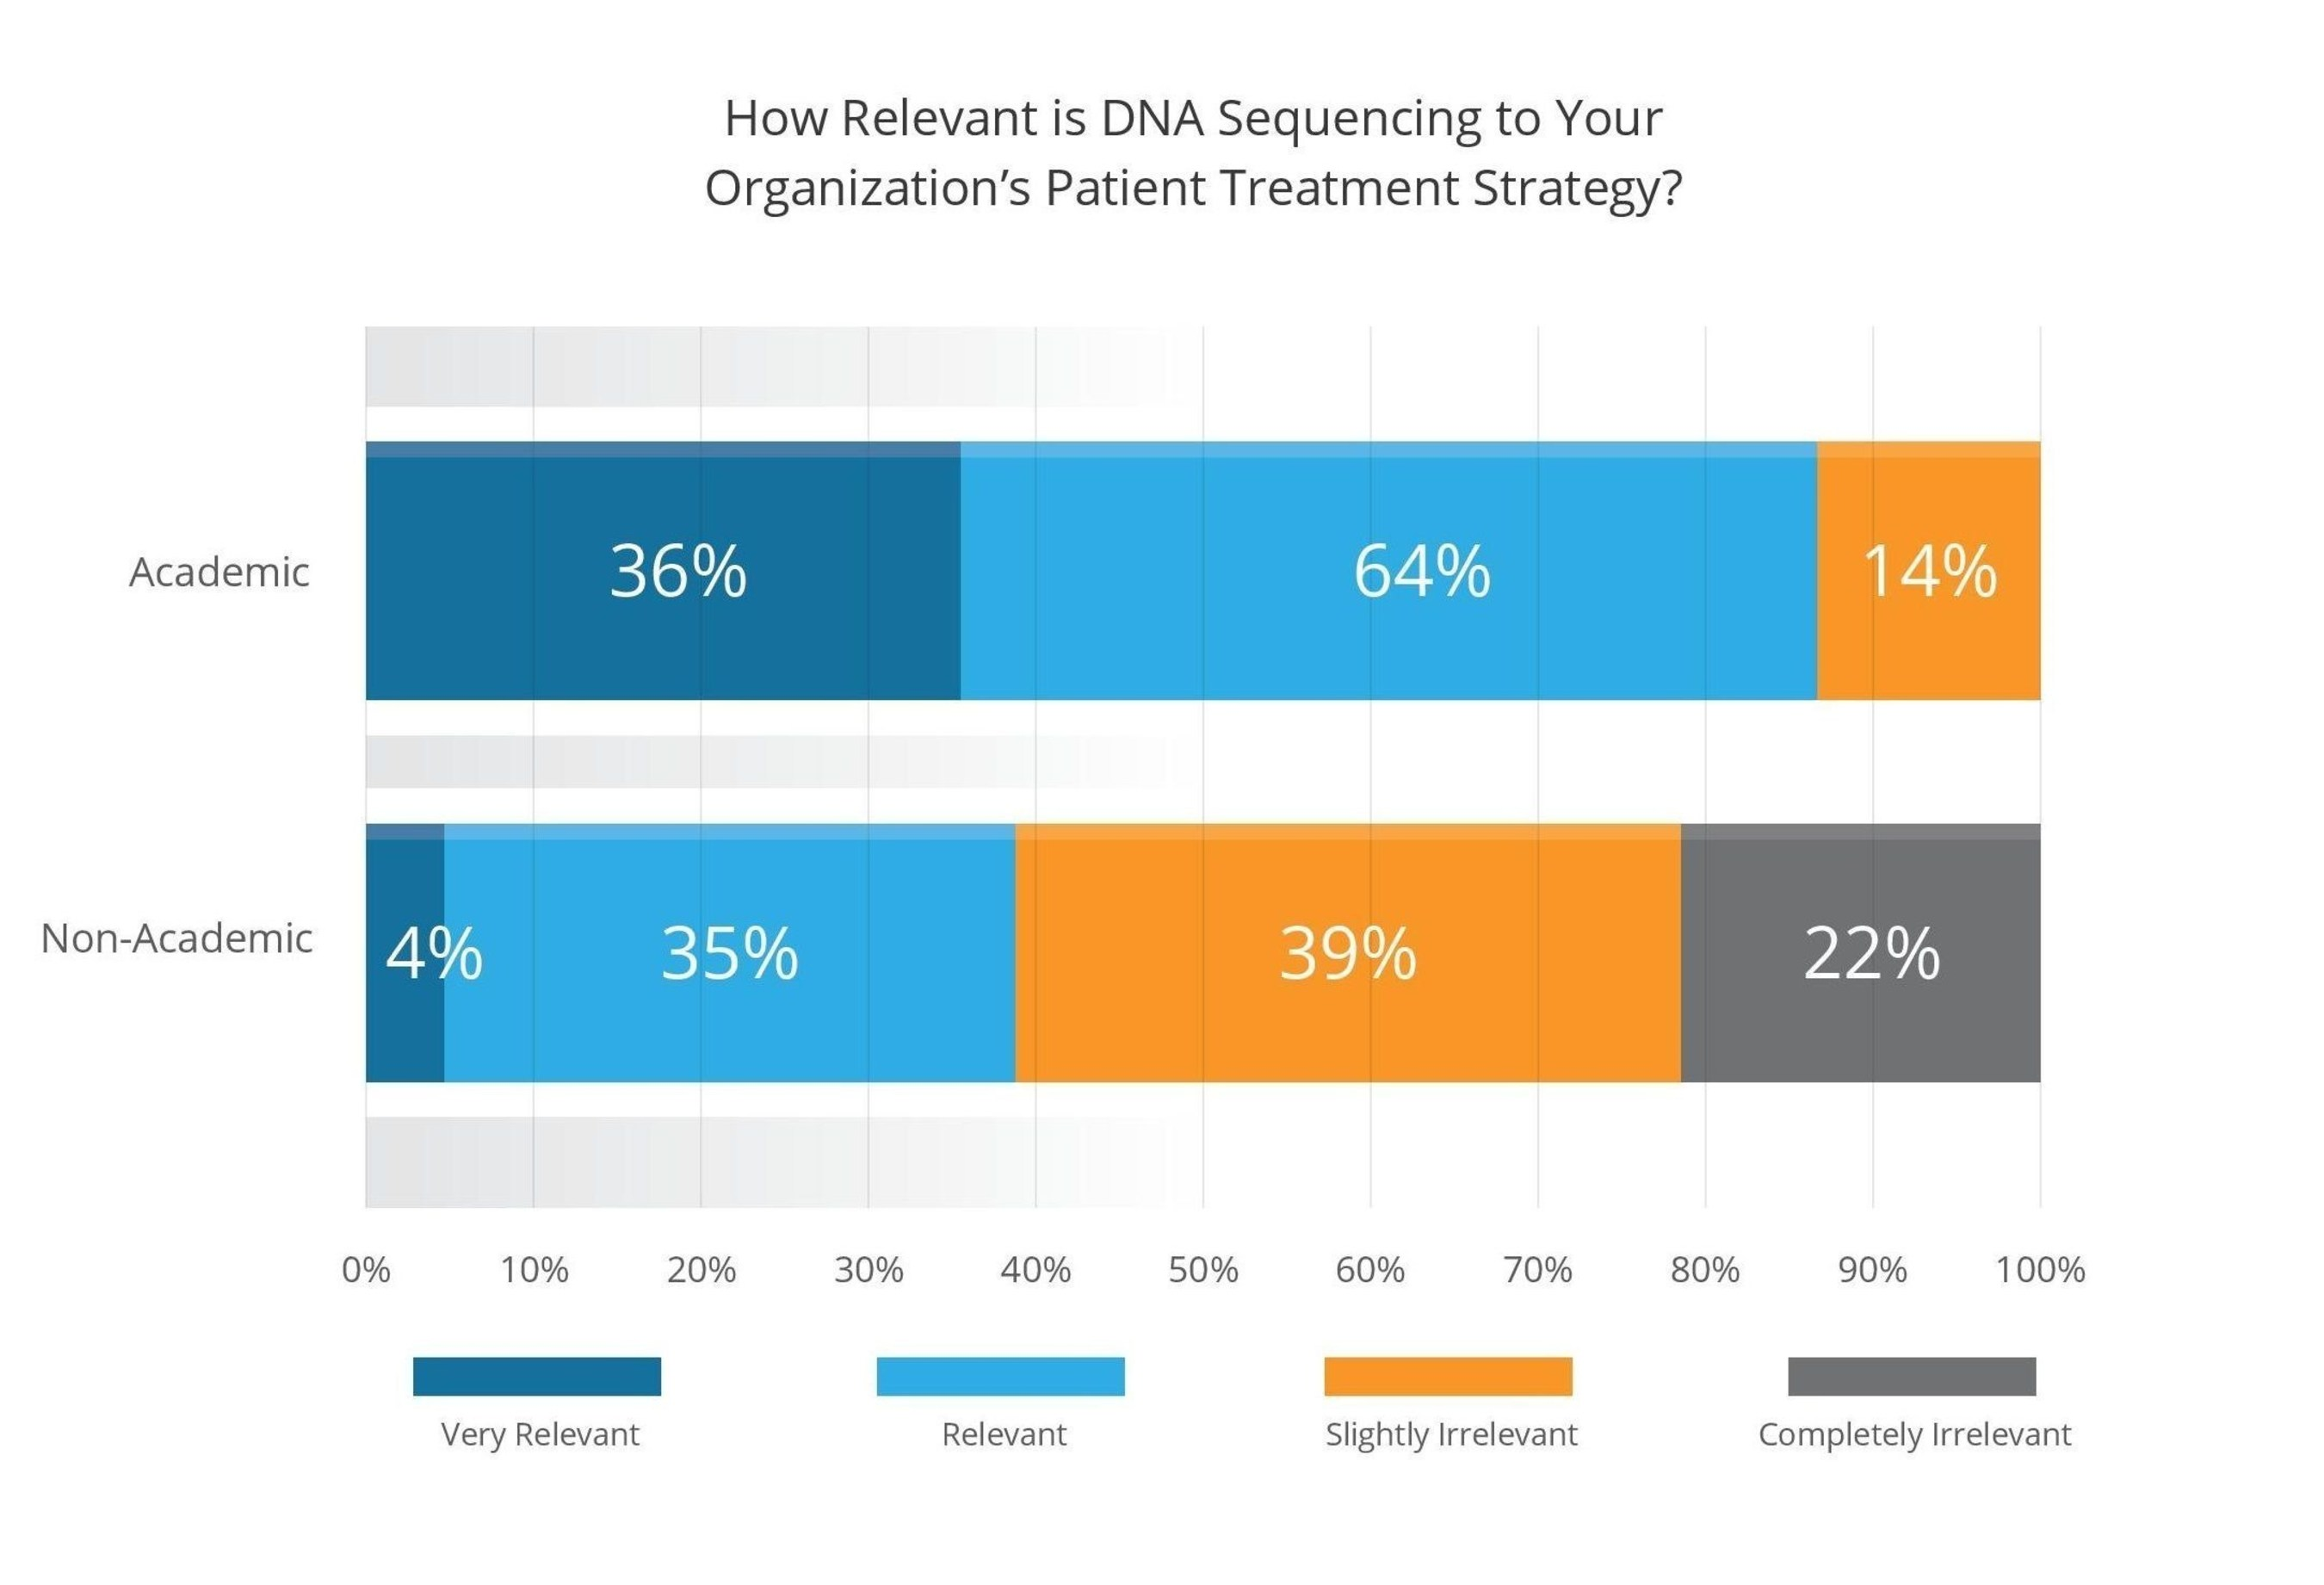 How Relevant is DNA Sequencing to Your Organization's Patient Treatment Strategy?